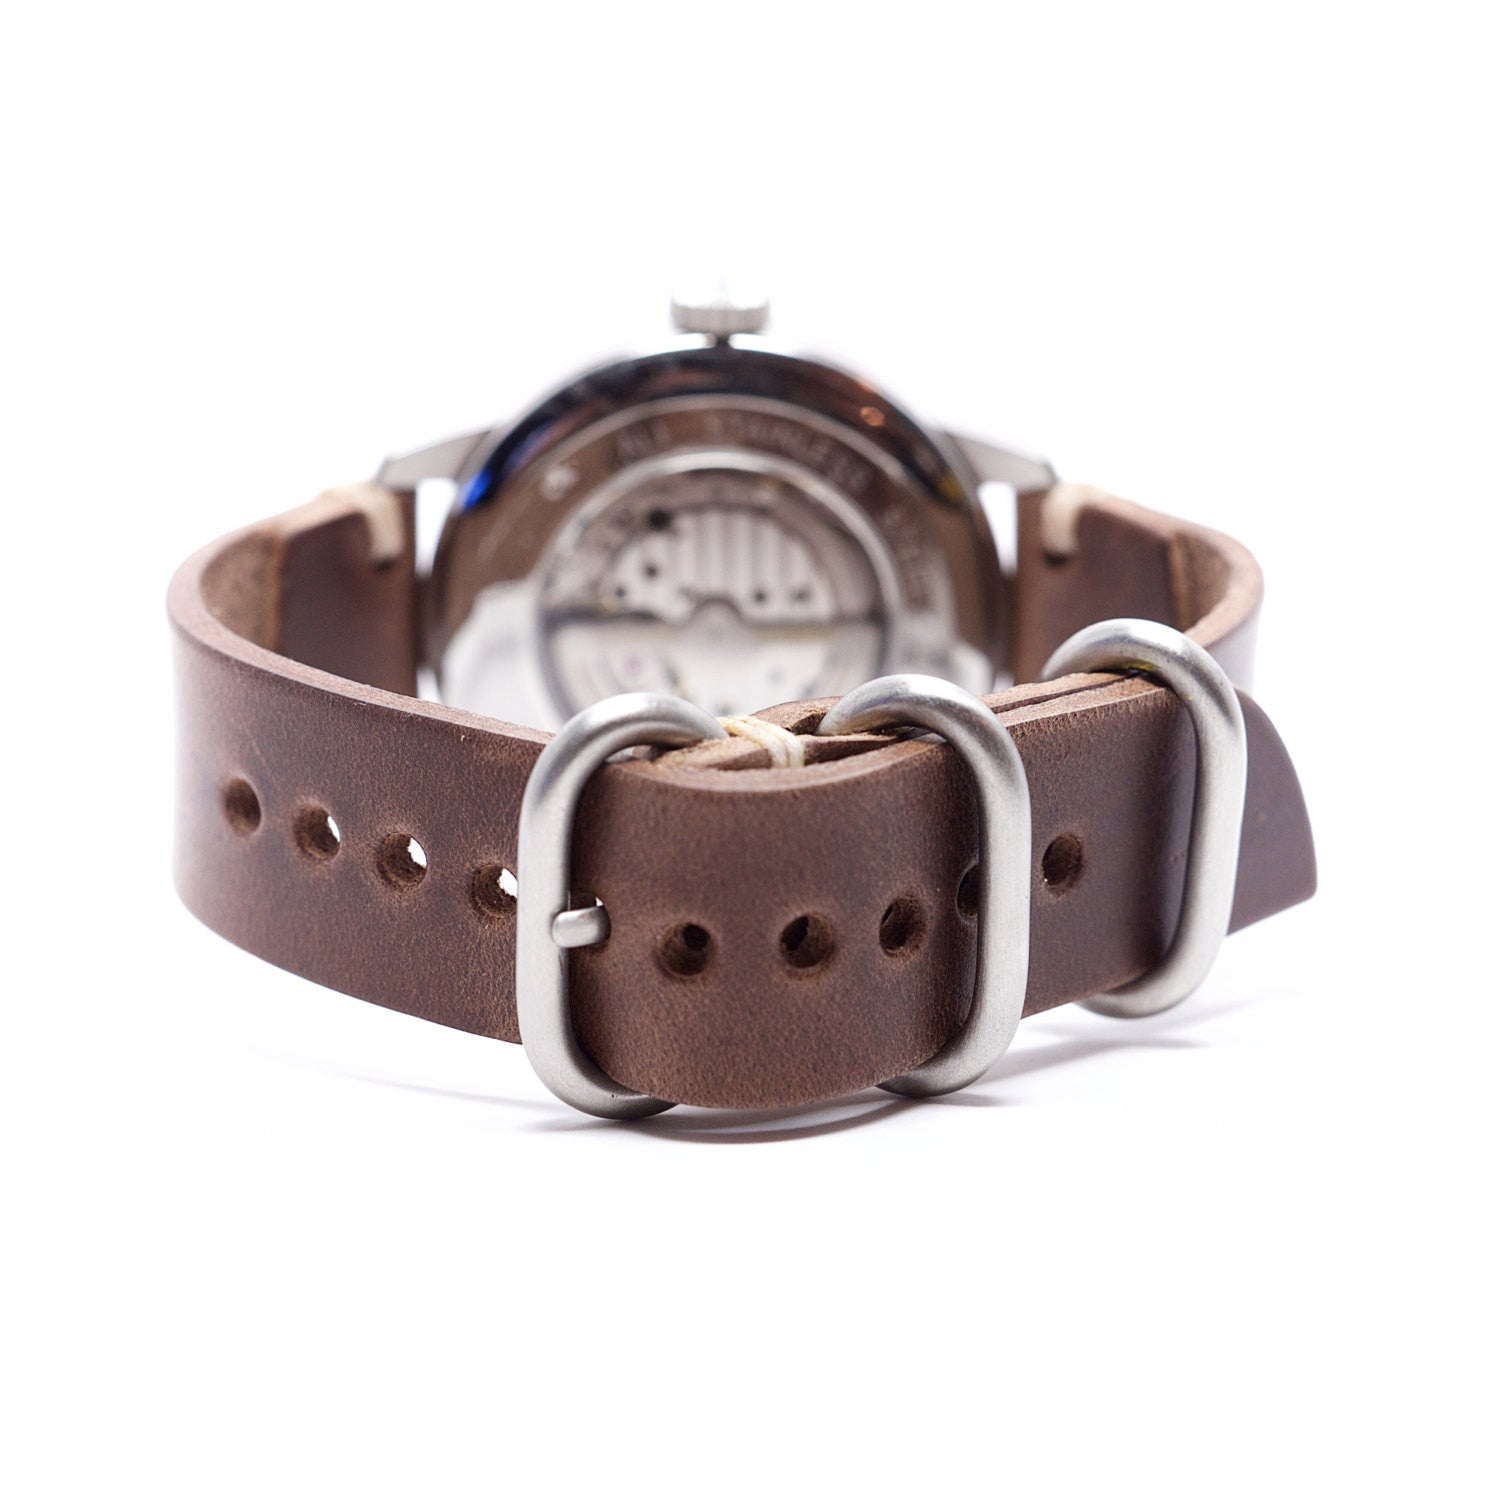 Leather Watch Strap by E3 Supply Co: Natural Horween Chromexcel